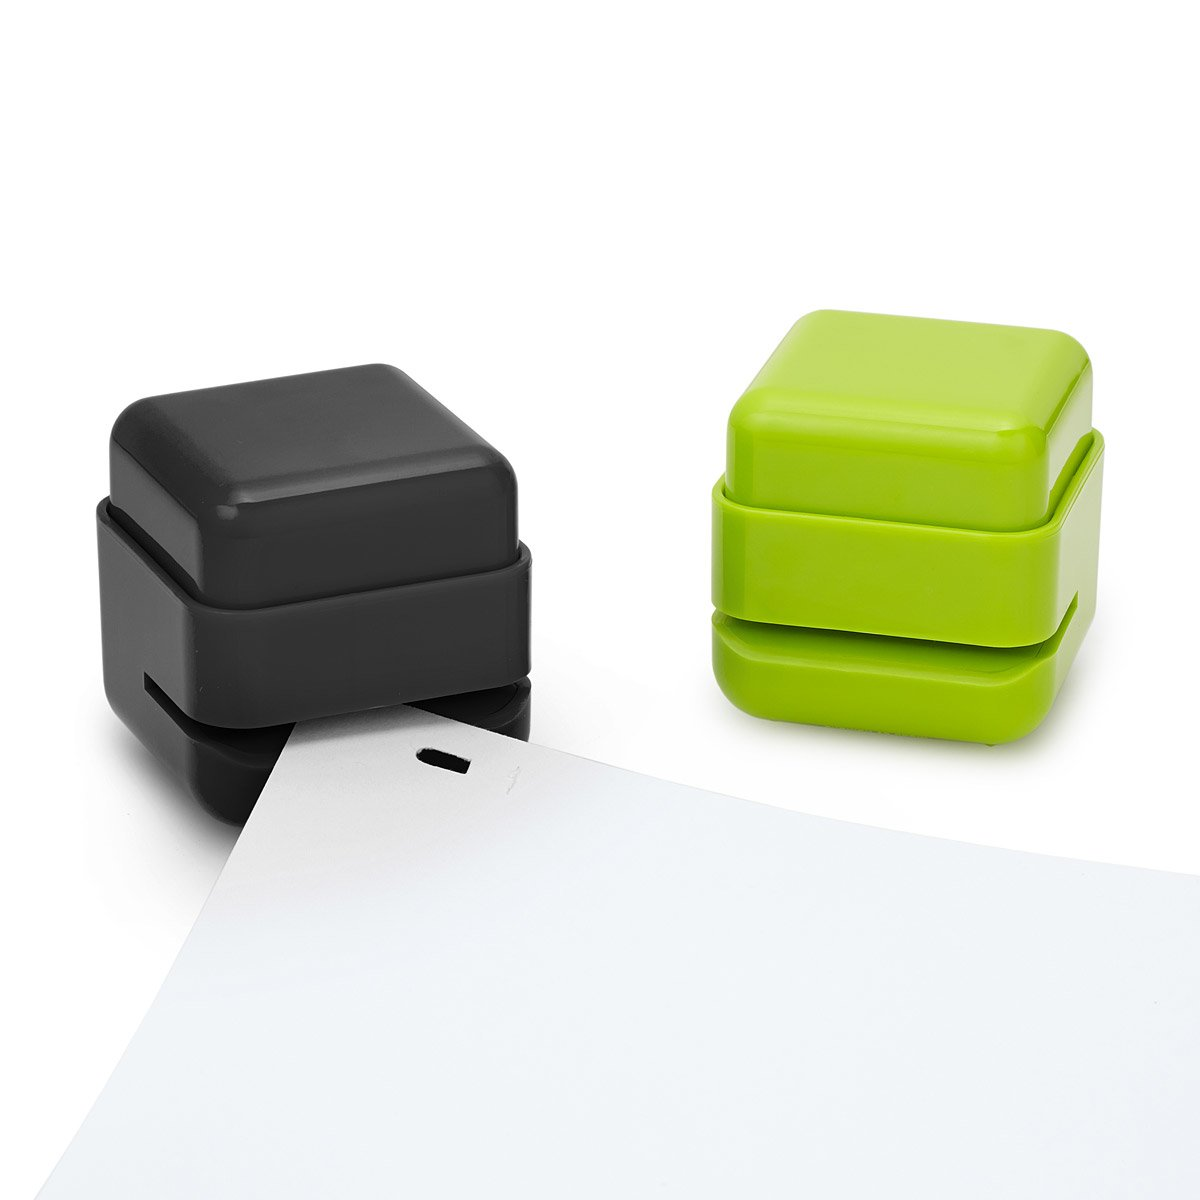 ool Desk ccessories & Office Gadgets UncommonGoods - ^